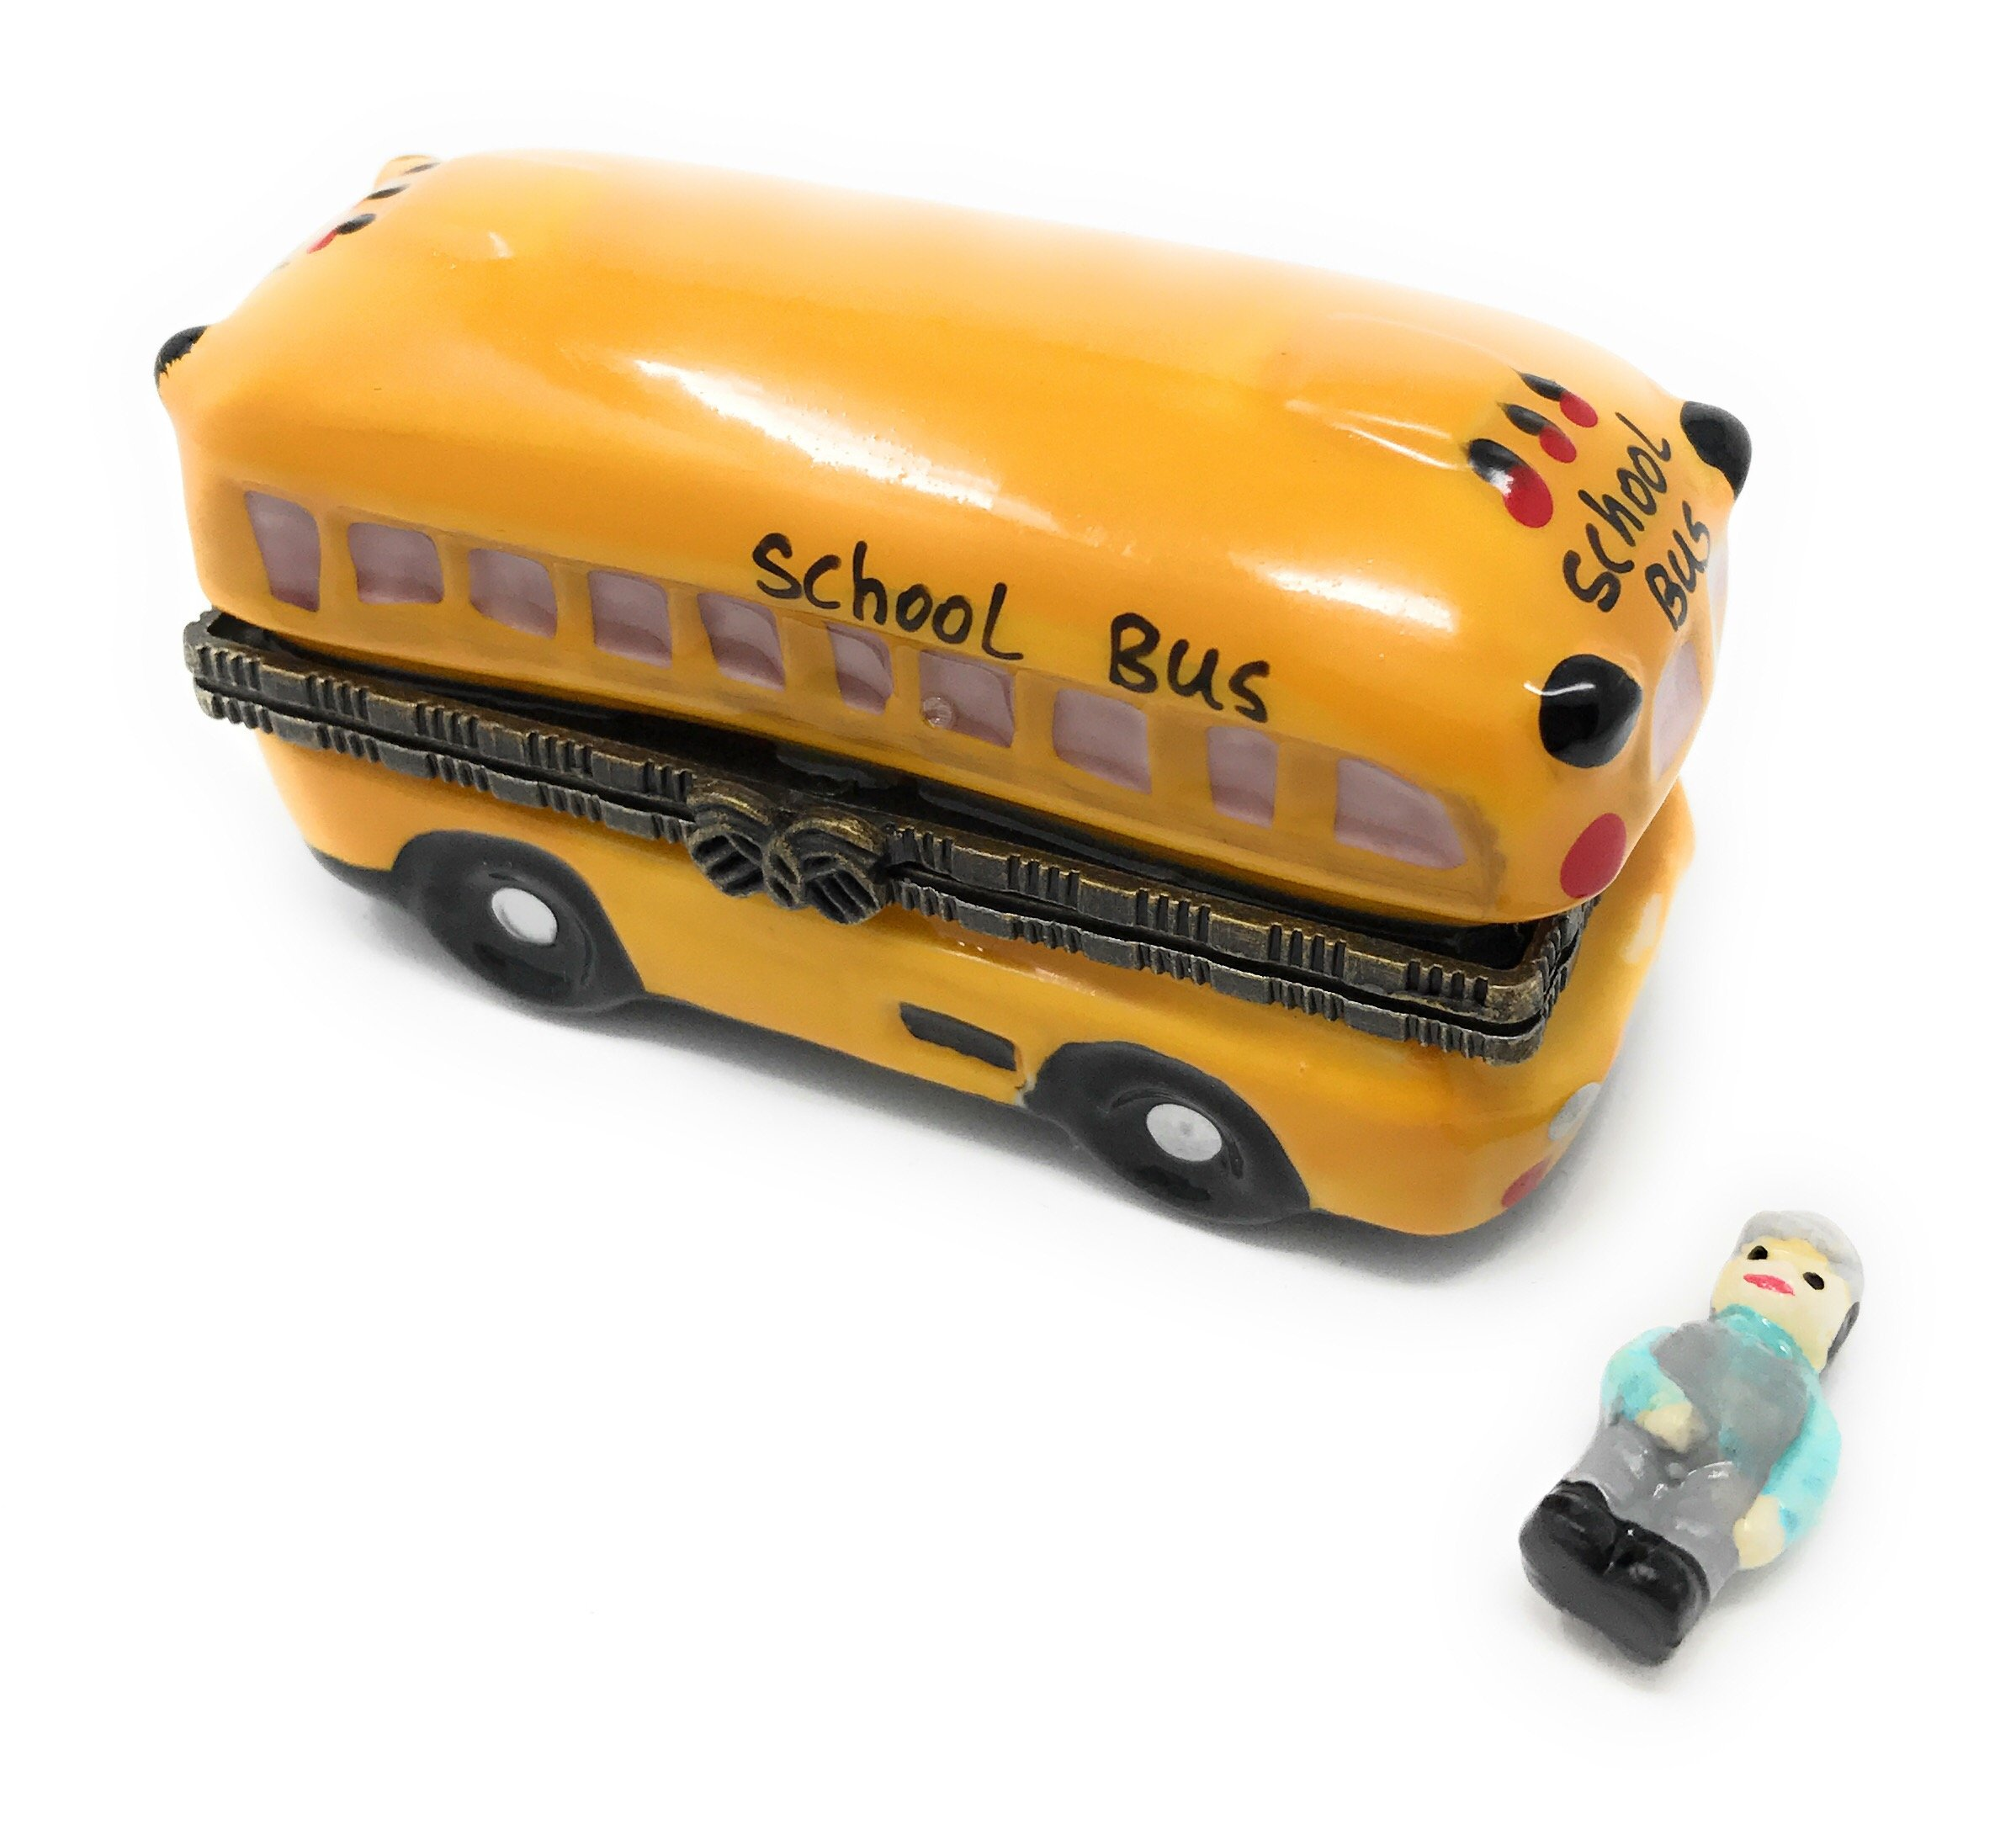 Porcelain Yellow School Bus Hinged Trinket Box with Tiny Trinket Inside, 2.875 Inches Long